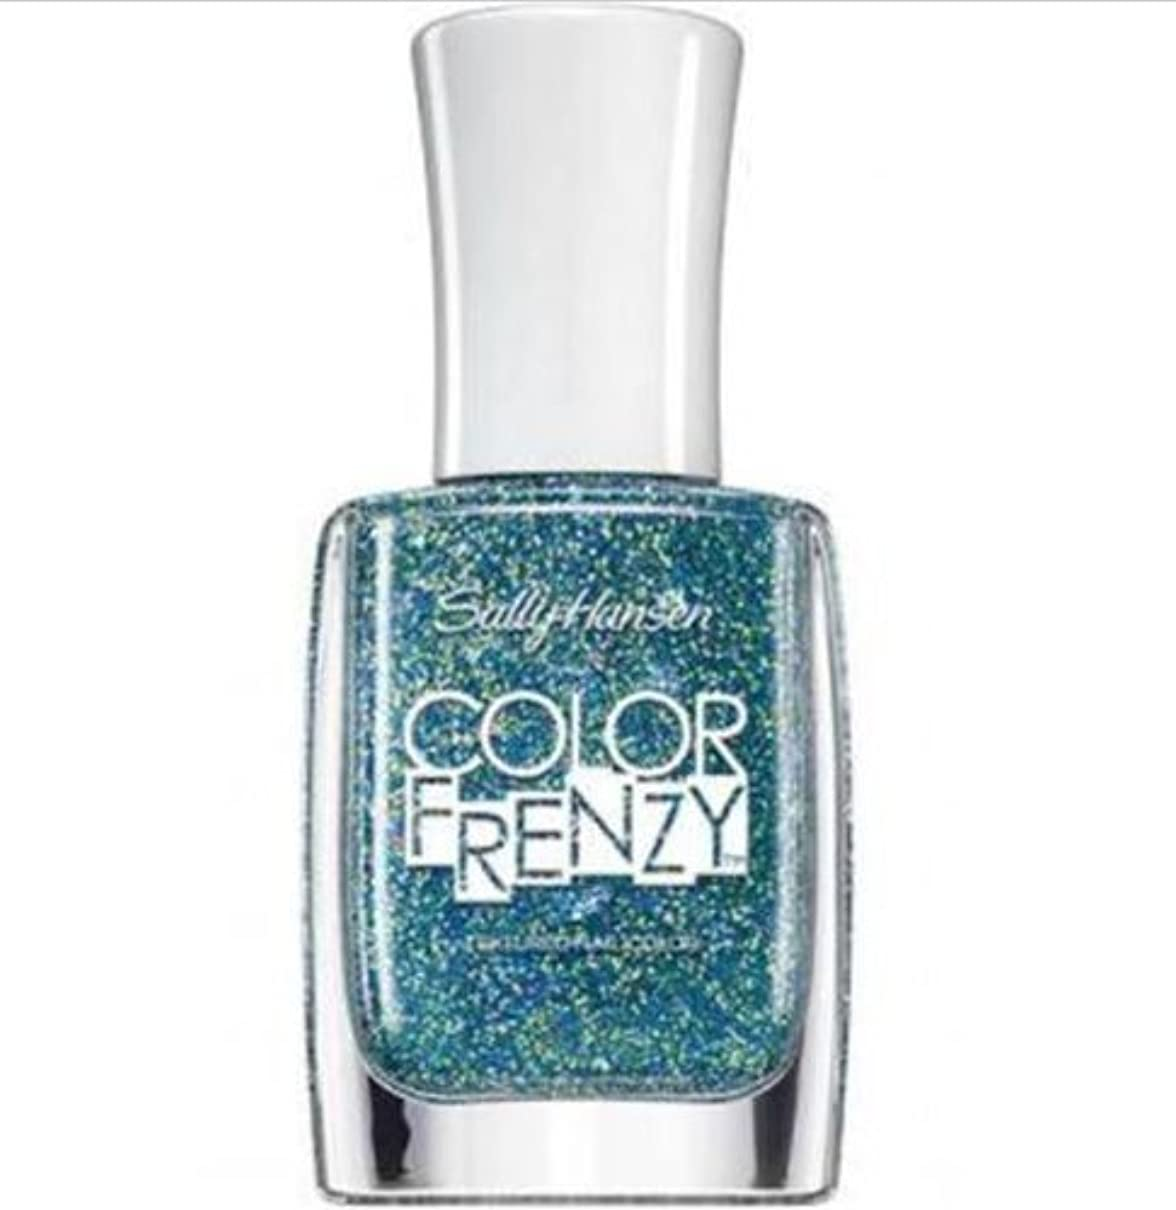 昆虫つまらない愛するSALLY HANSEN Color Frenzy Textured Nail Color - Sea Salt (並行輸入品)